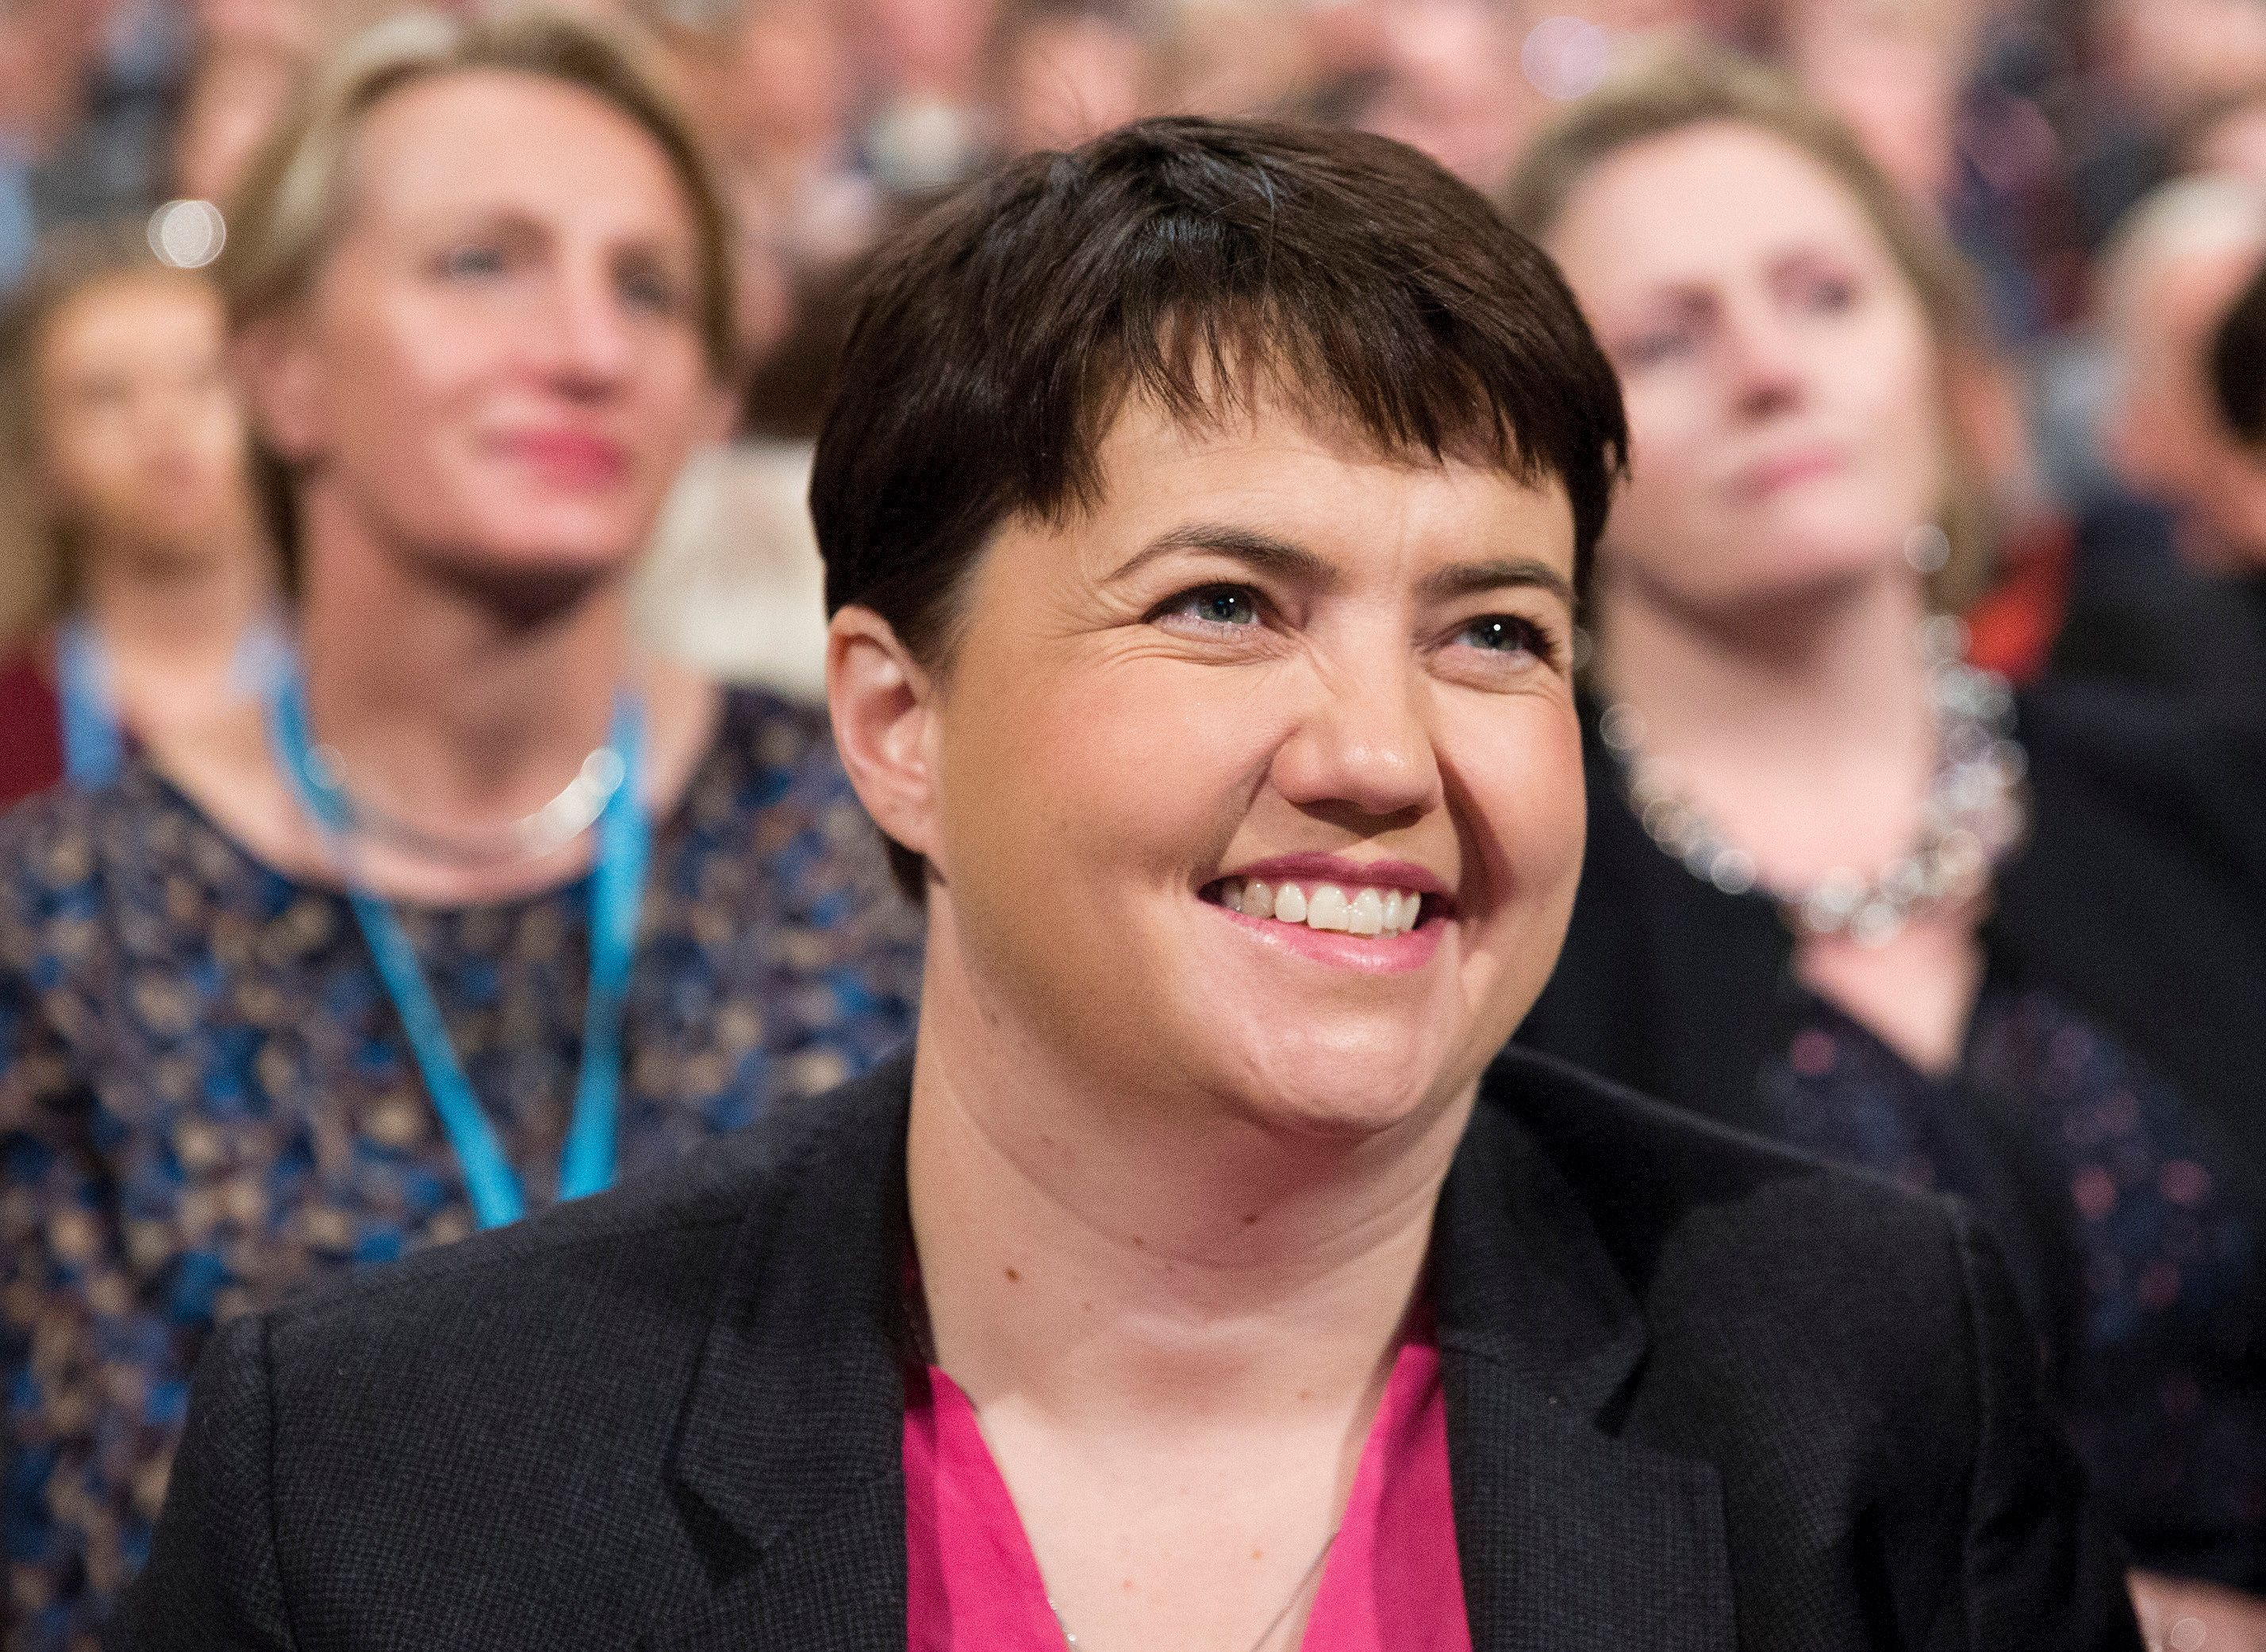 Scottish Tory Leader Ruth Davidson Wants To Appear On Strictly Come